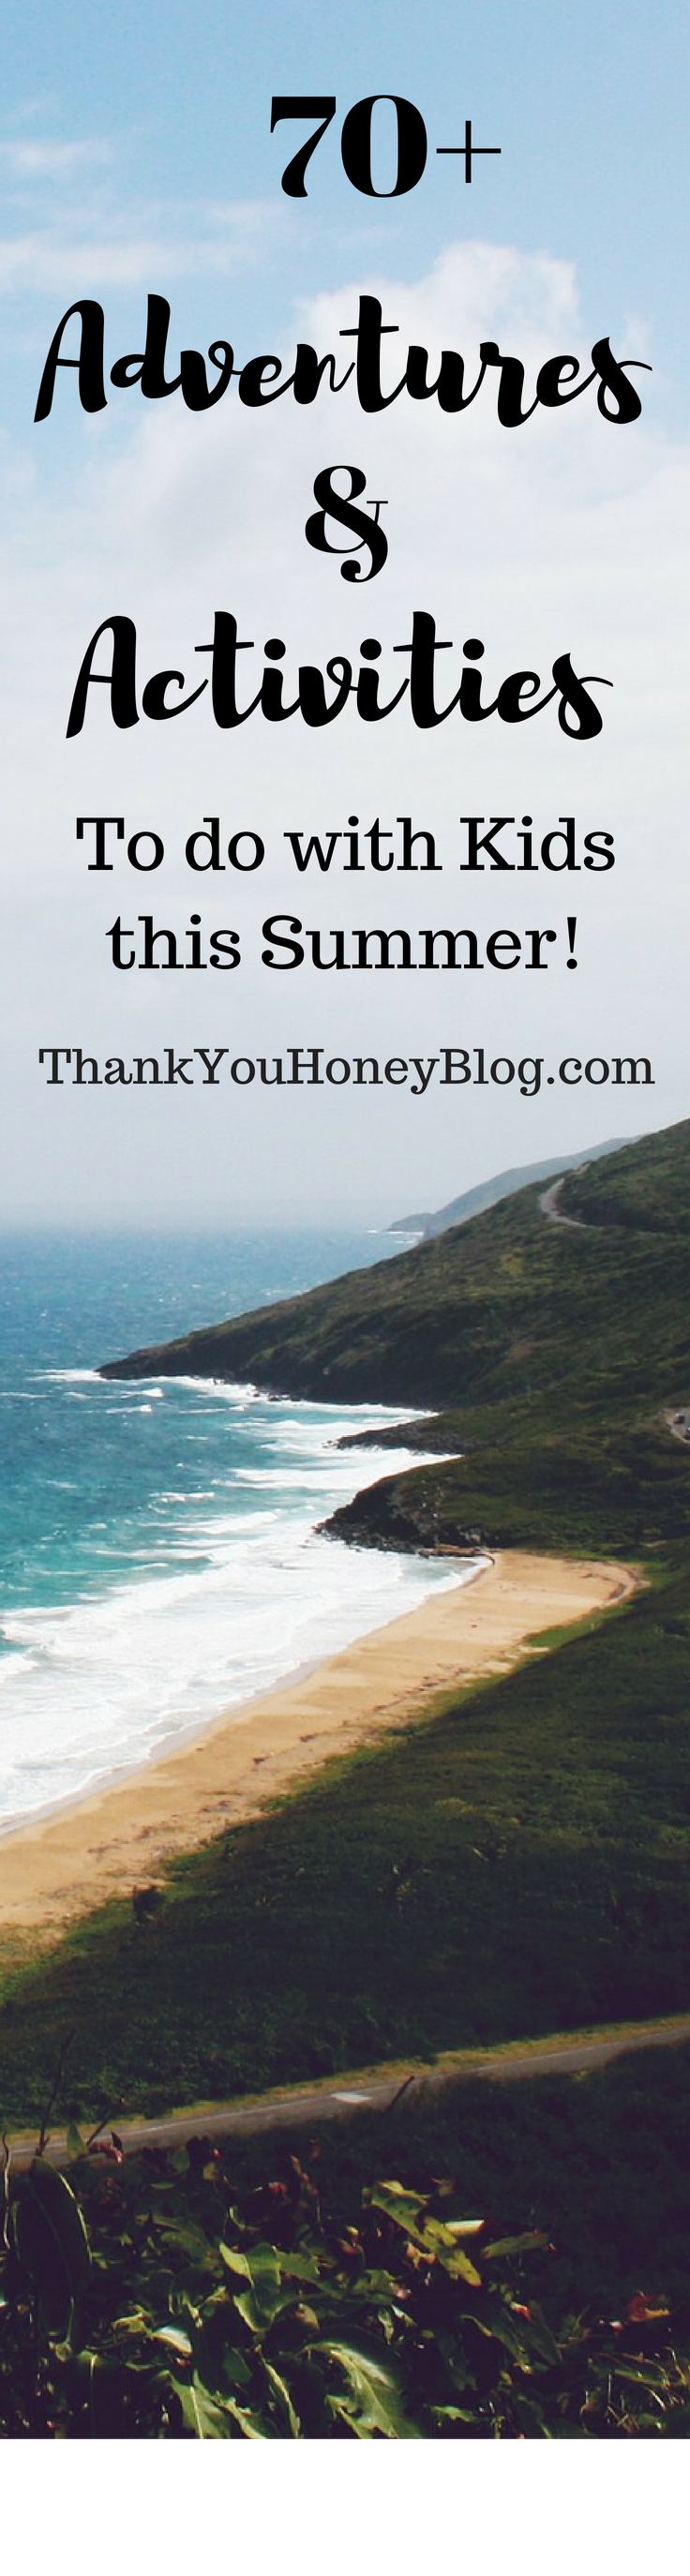 70+ Adventures & Activities to do with Kids this Summer